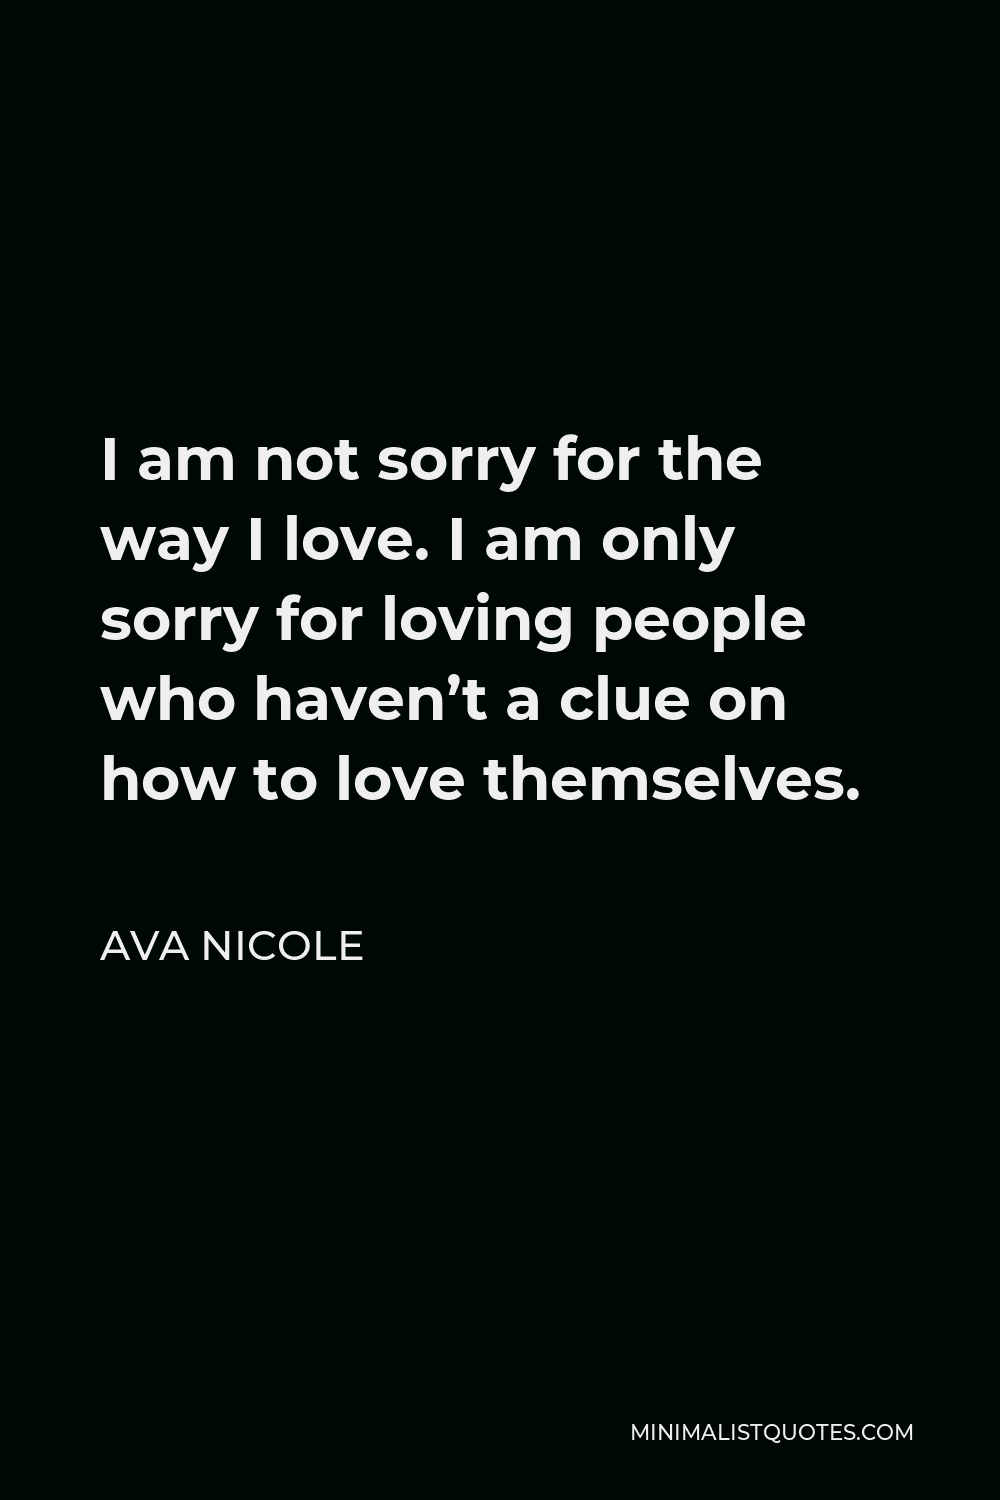 Ava Nicole Quote - I am not sorry for the way I love. I am only sorry for loving people who haven't a clue on how to love themselves.